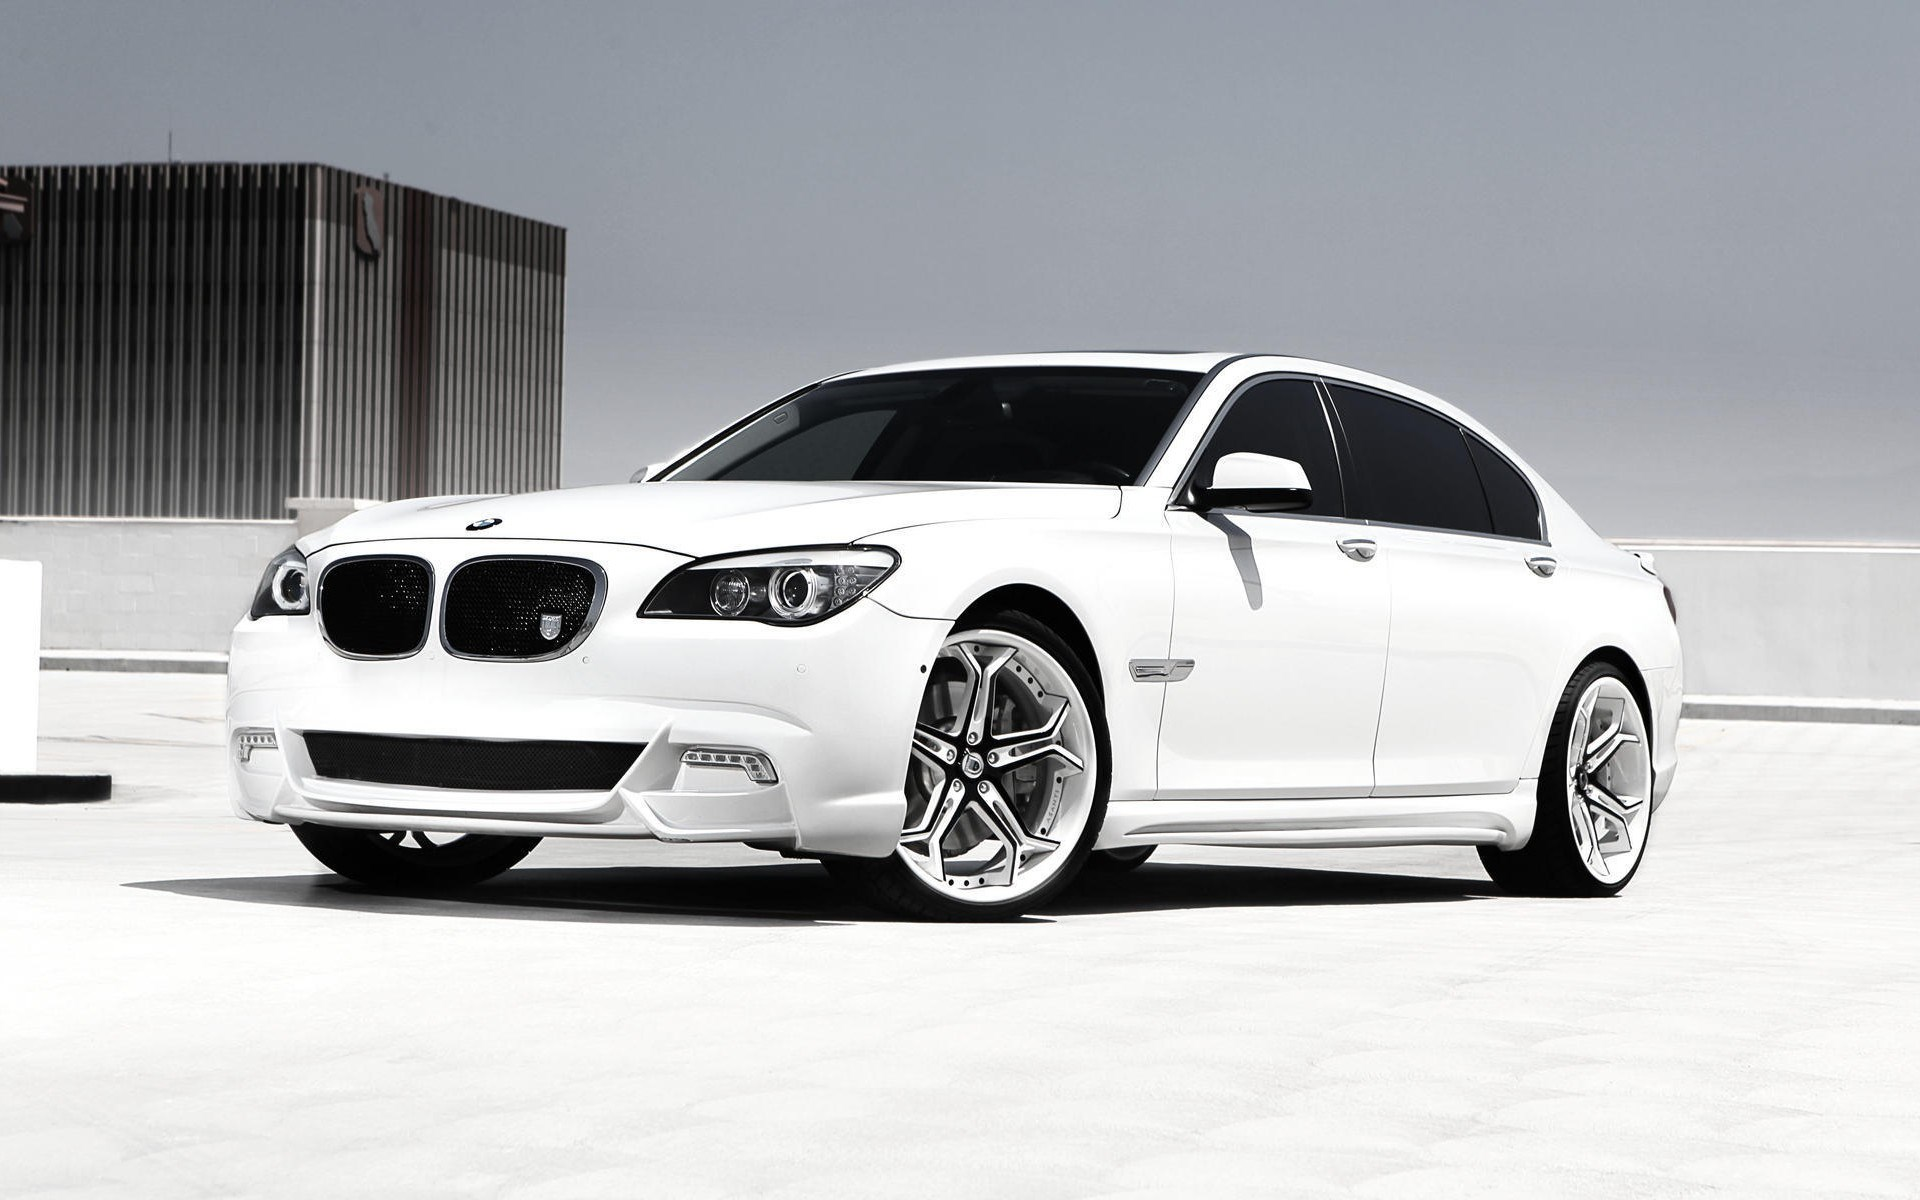 BMW 750Li White Car